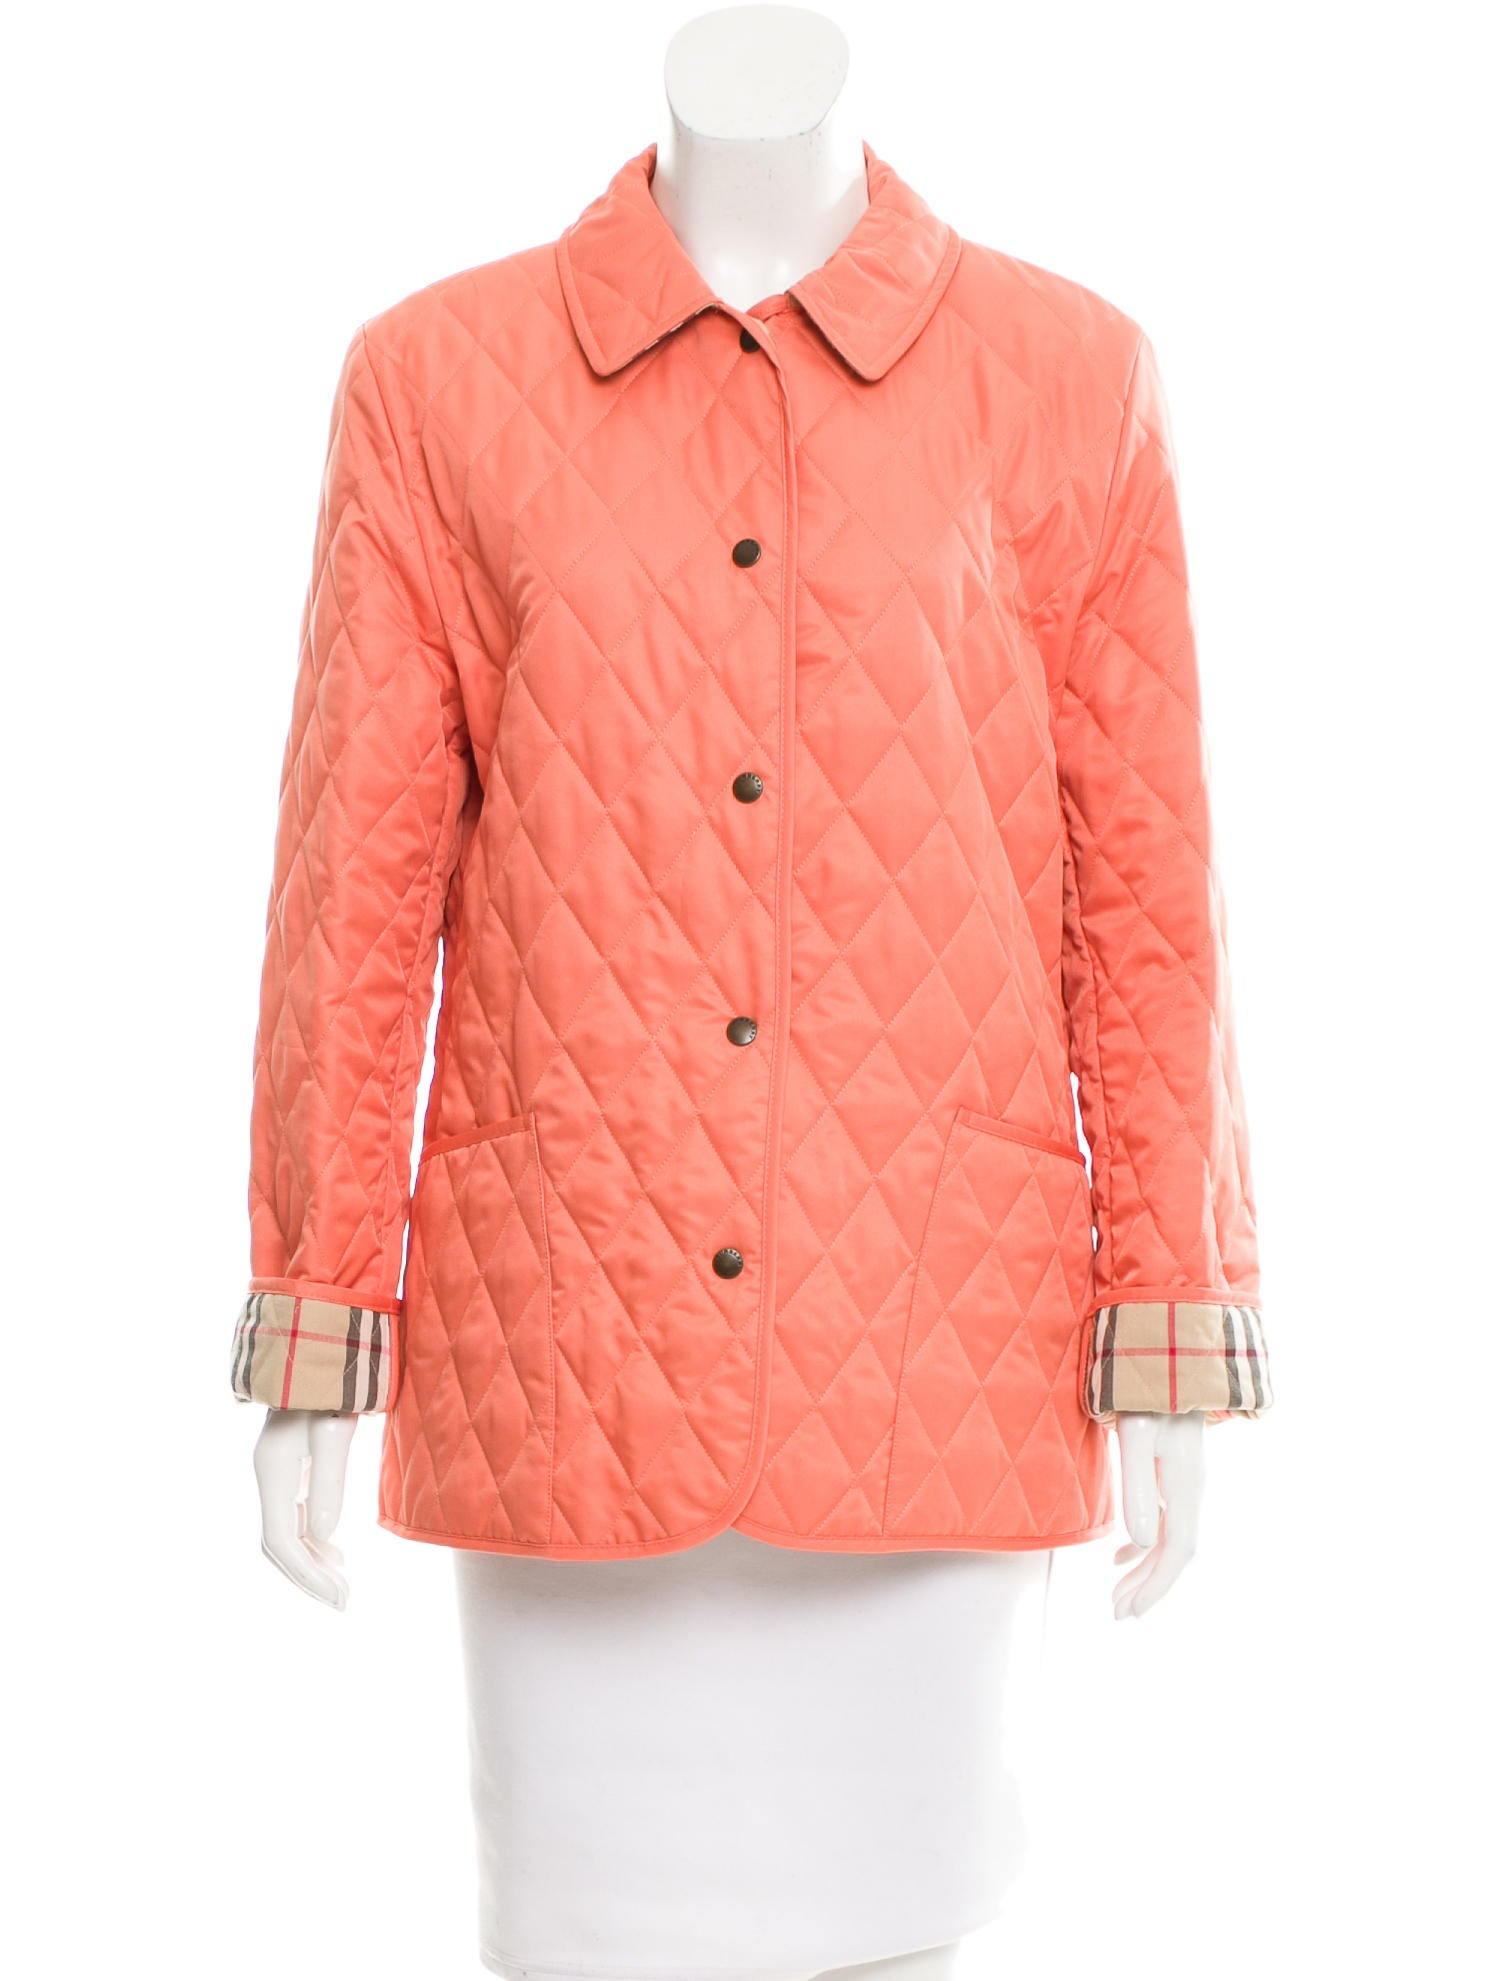 Burberry Classic Quilted Jacket Clothing Bur69141